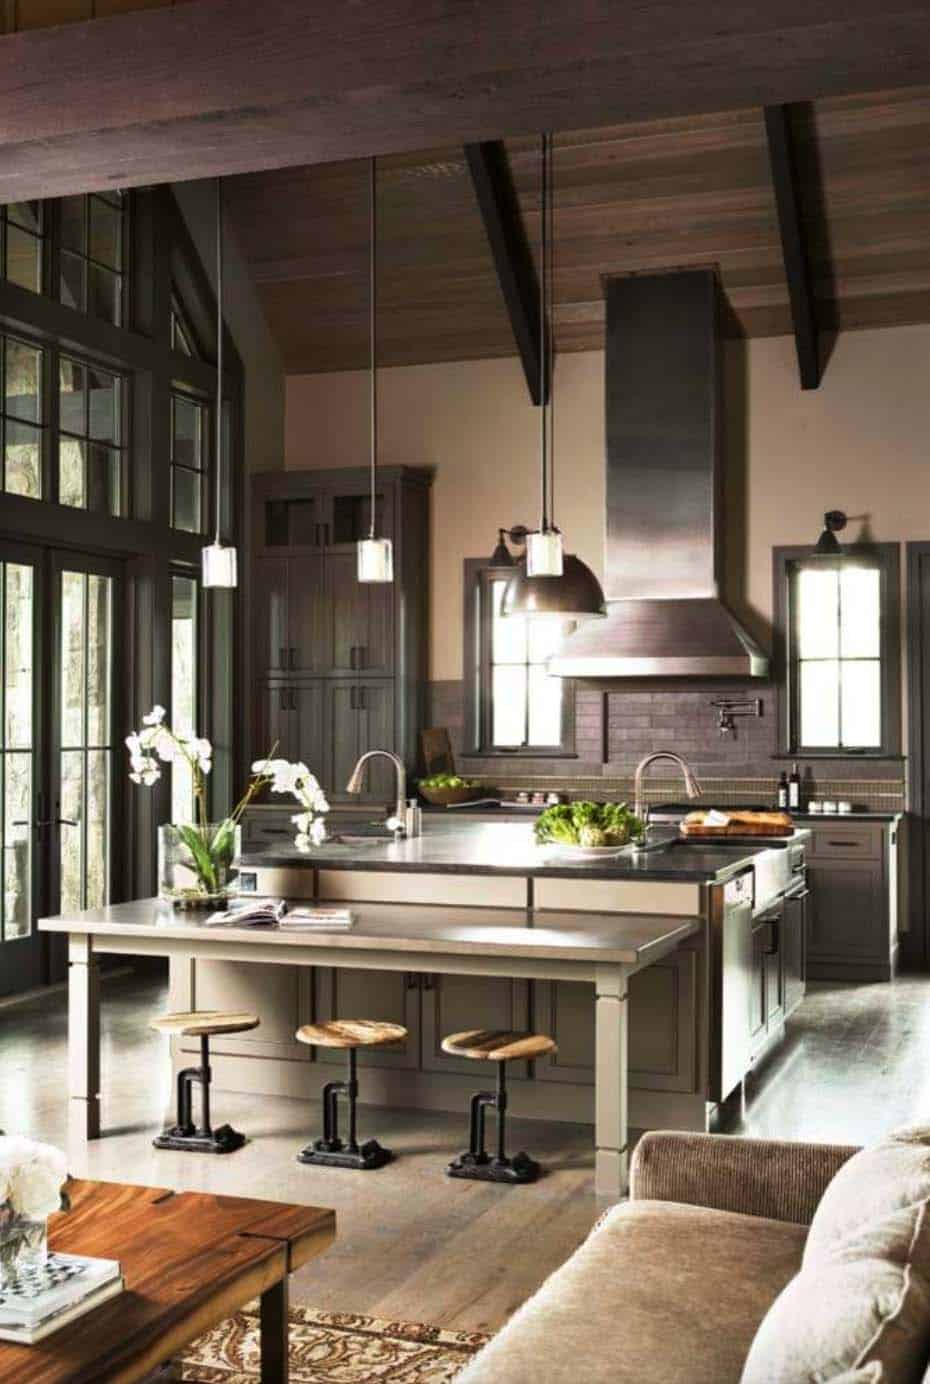 40 unbelievable rustic kitchen design ideas to steal - Sherwin williams foothills interior ...